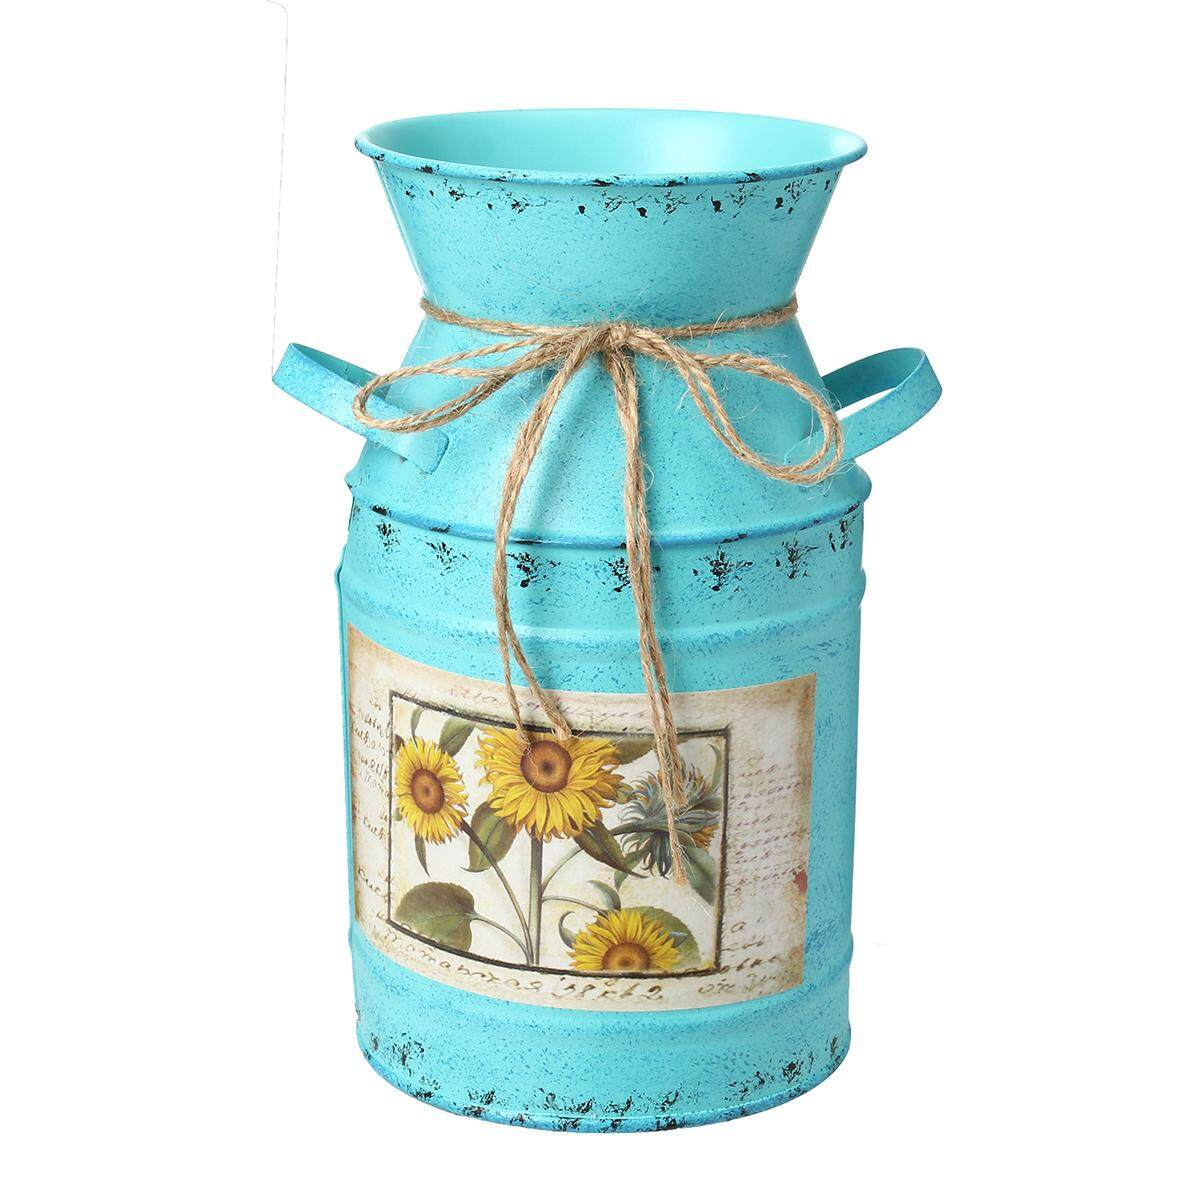 Rustic Green Metal Milk Churn Vase Planter Flower Herb Pot Novelty Ornament GIFT